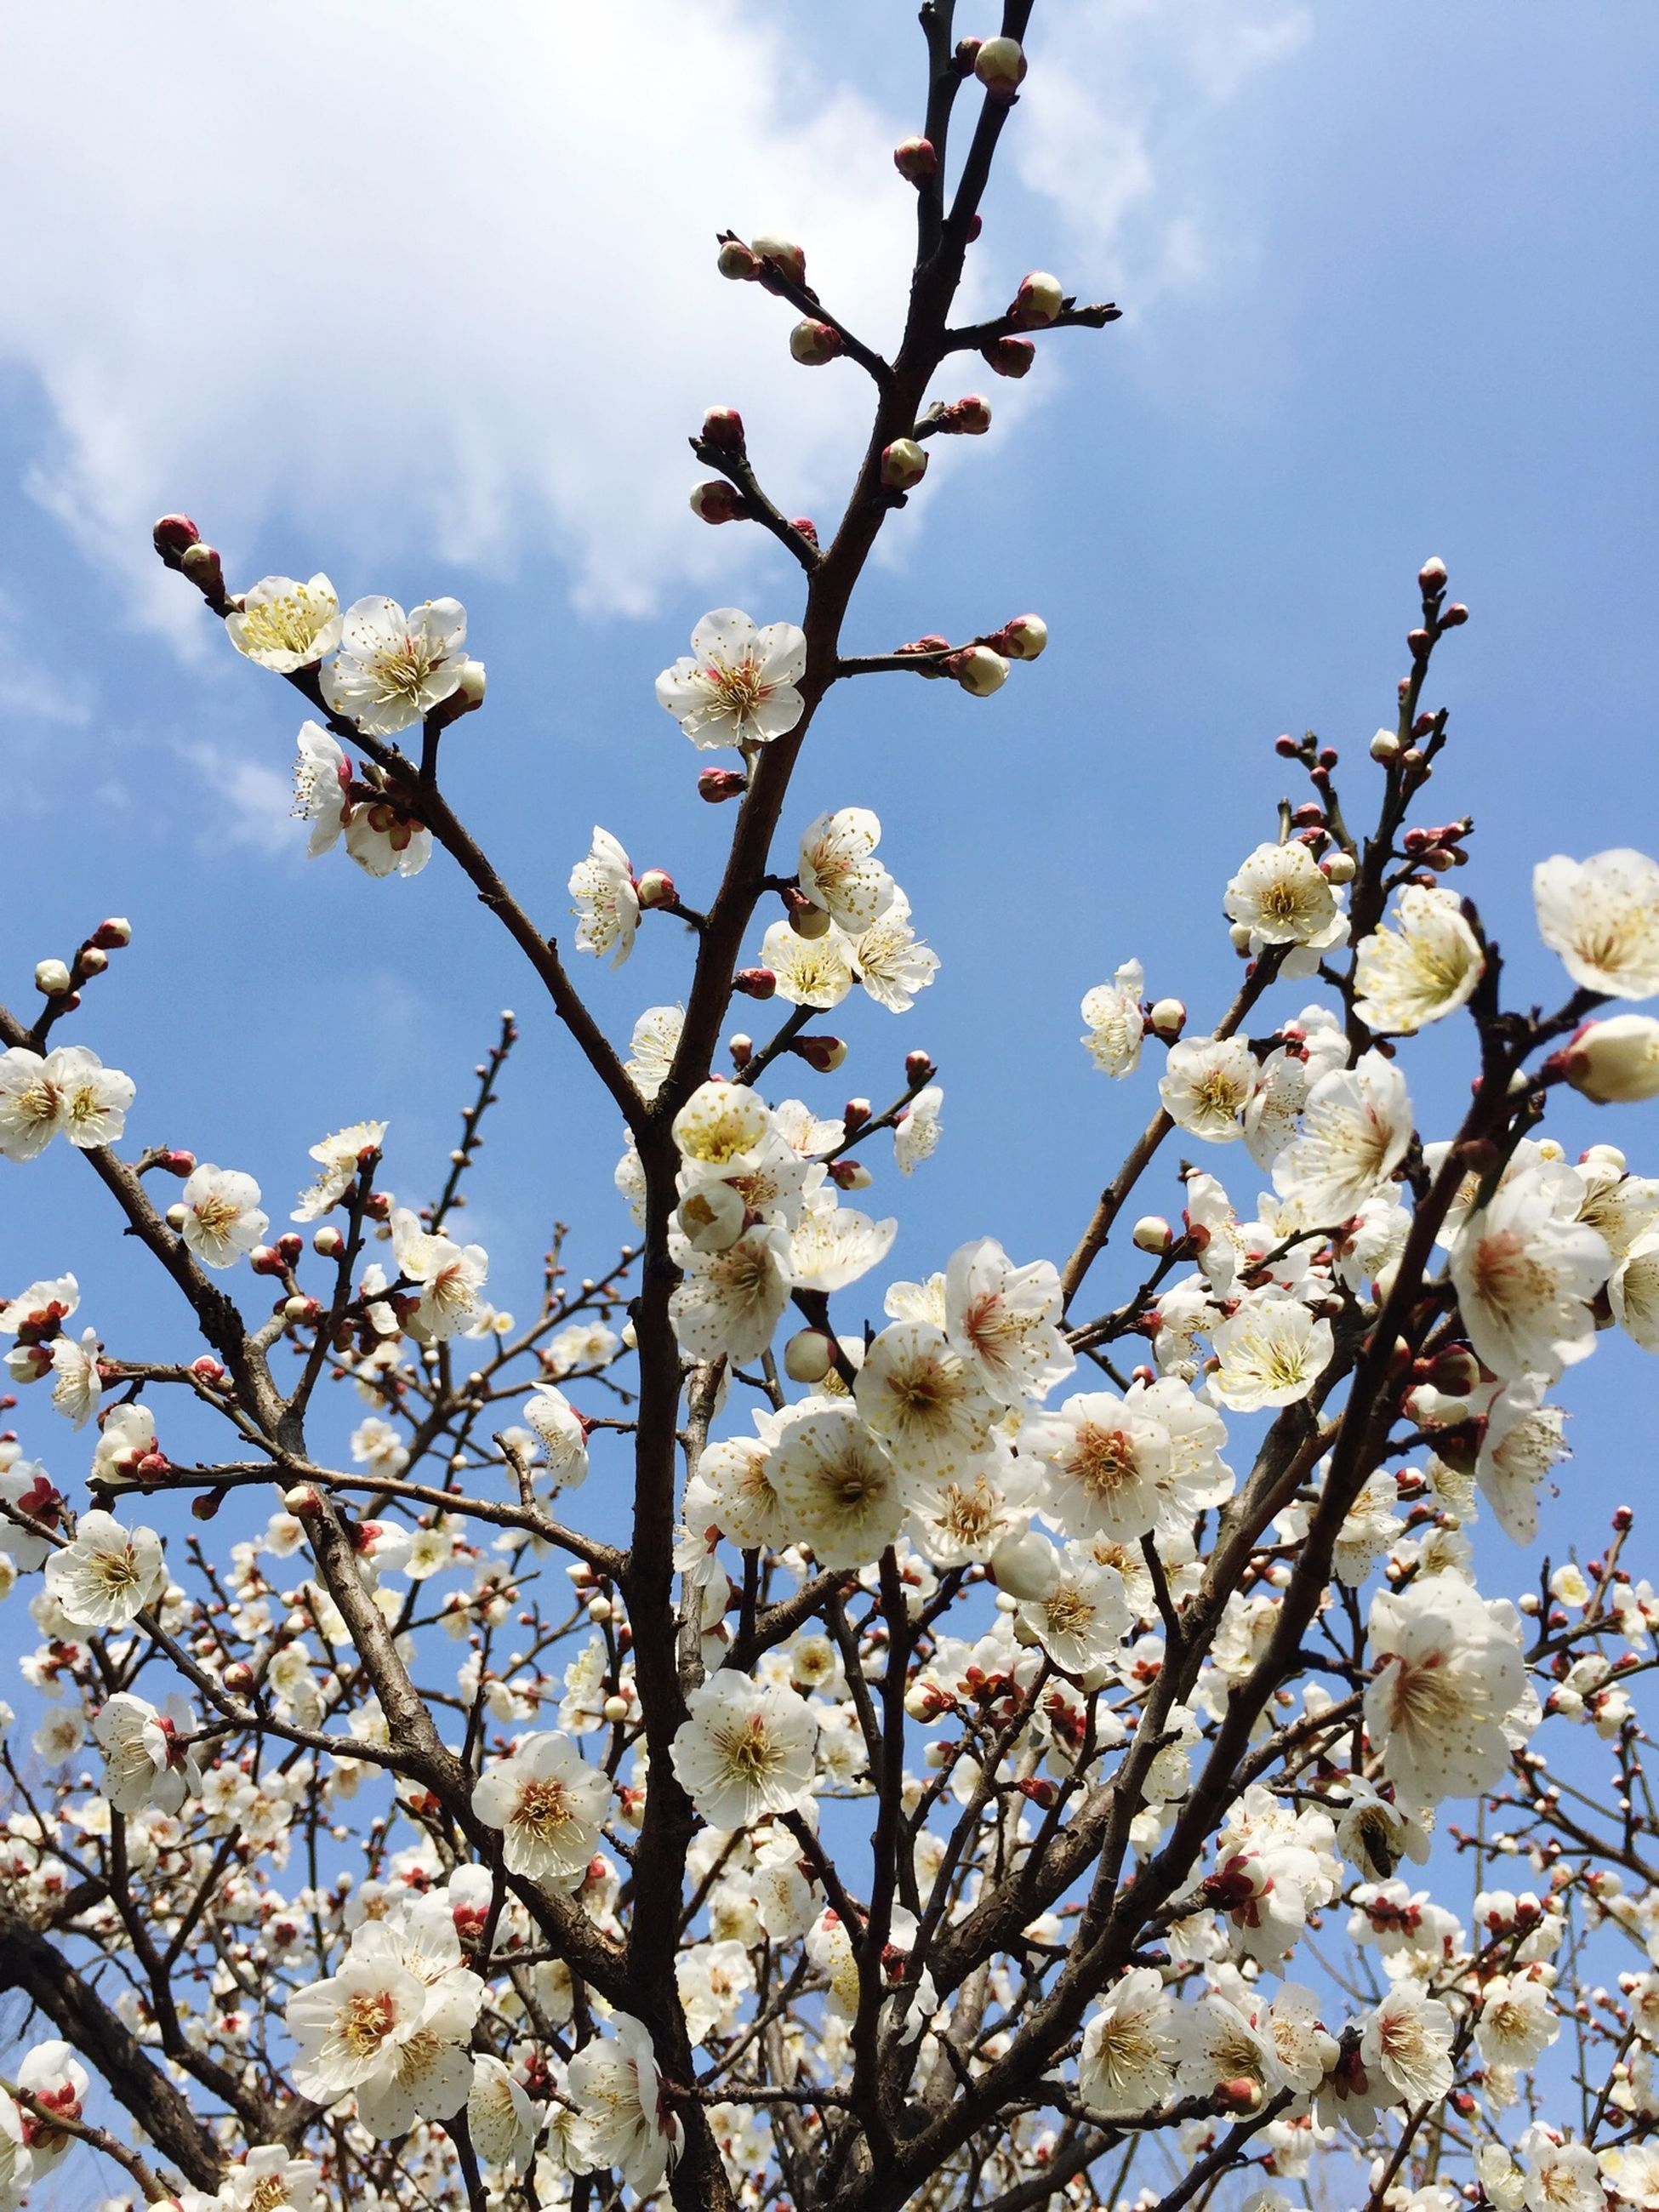 flower, branch, low angle view, freshness, growth, fragility, tree, sky, blossom, beauty in nature, cherry blossom, nature, white color, blooming, cherry tree, springtime, petal, in bloom, twig, day